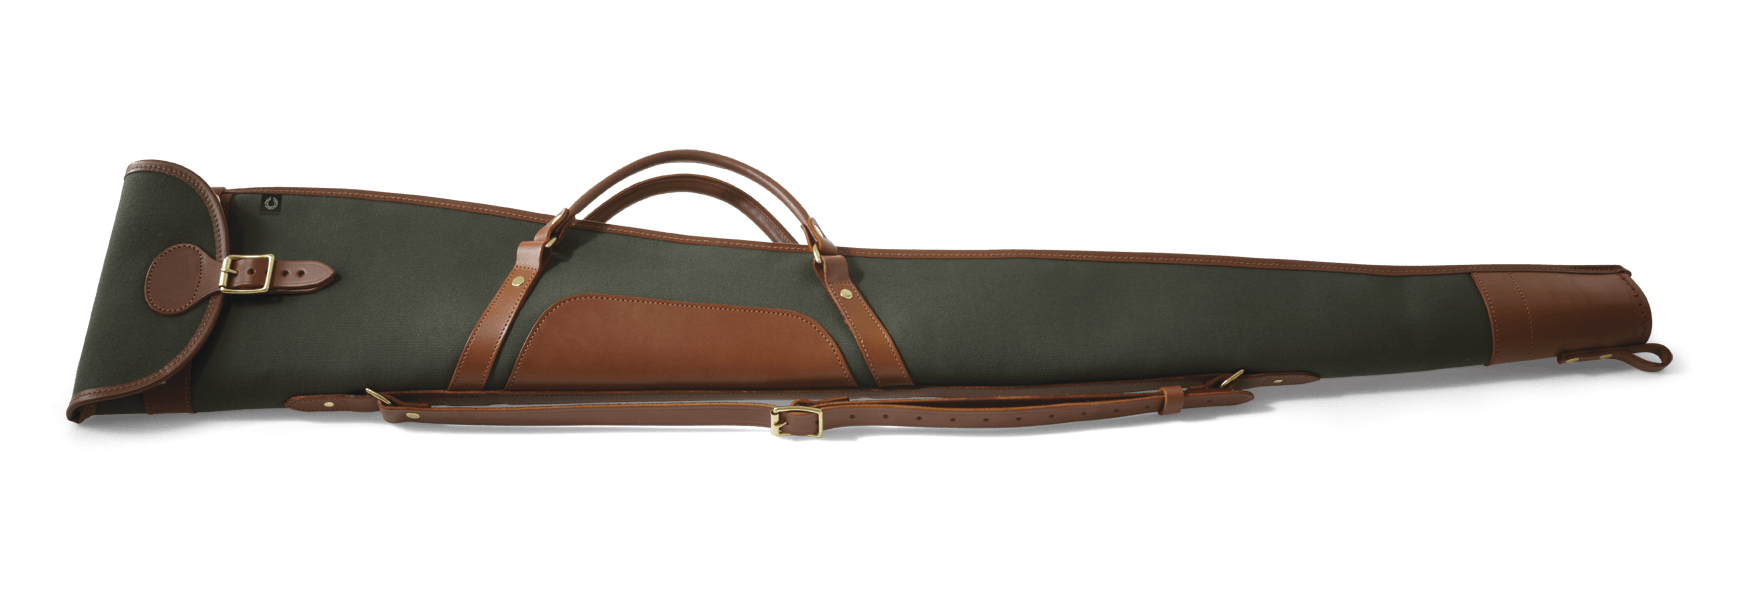 "CROOTS Rosedale Shotgun Slip 30"", håndtag, kanvas, dark loden/light tan"